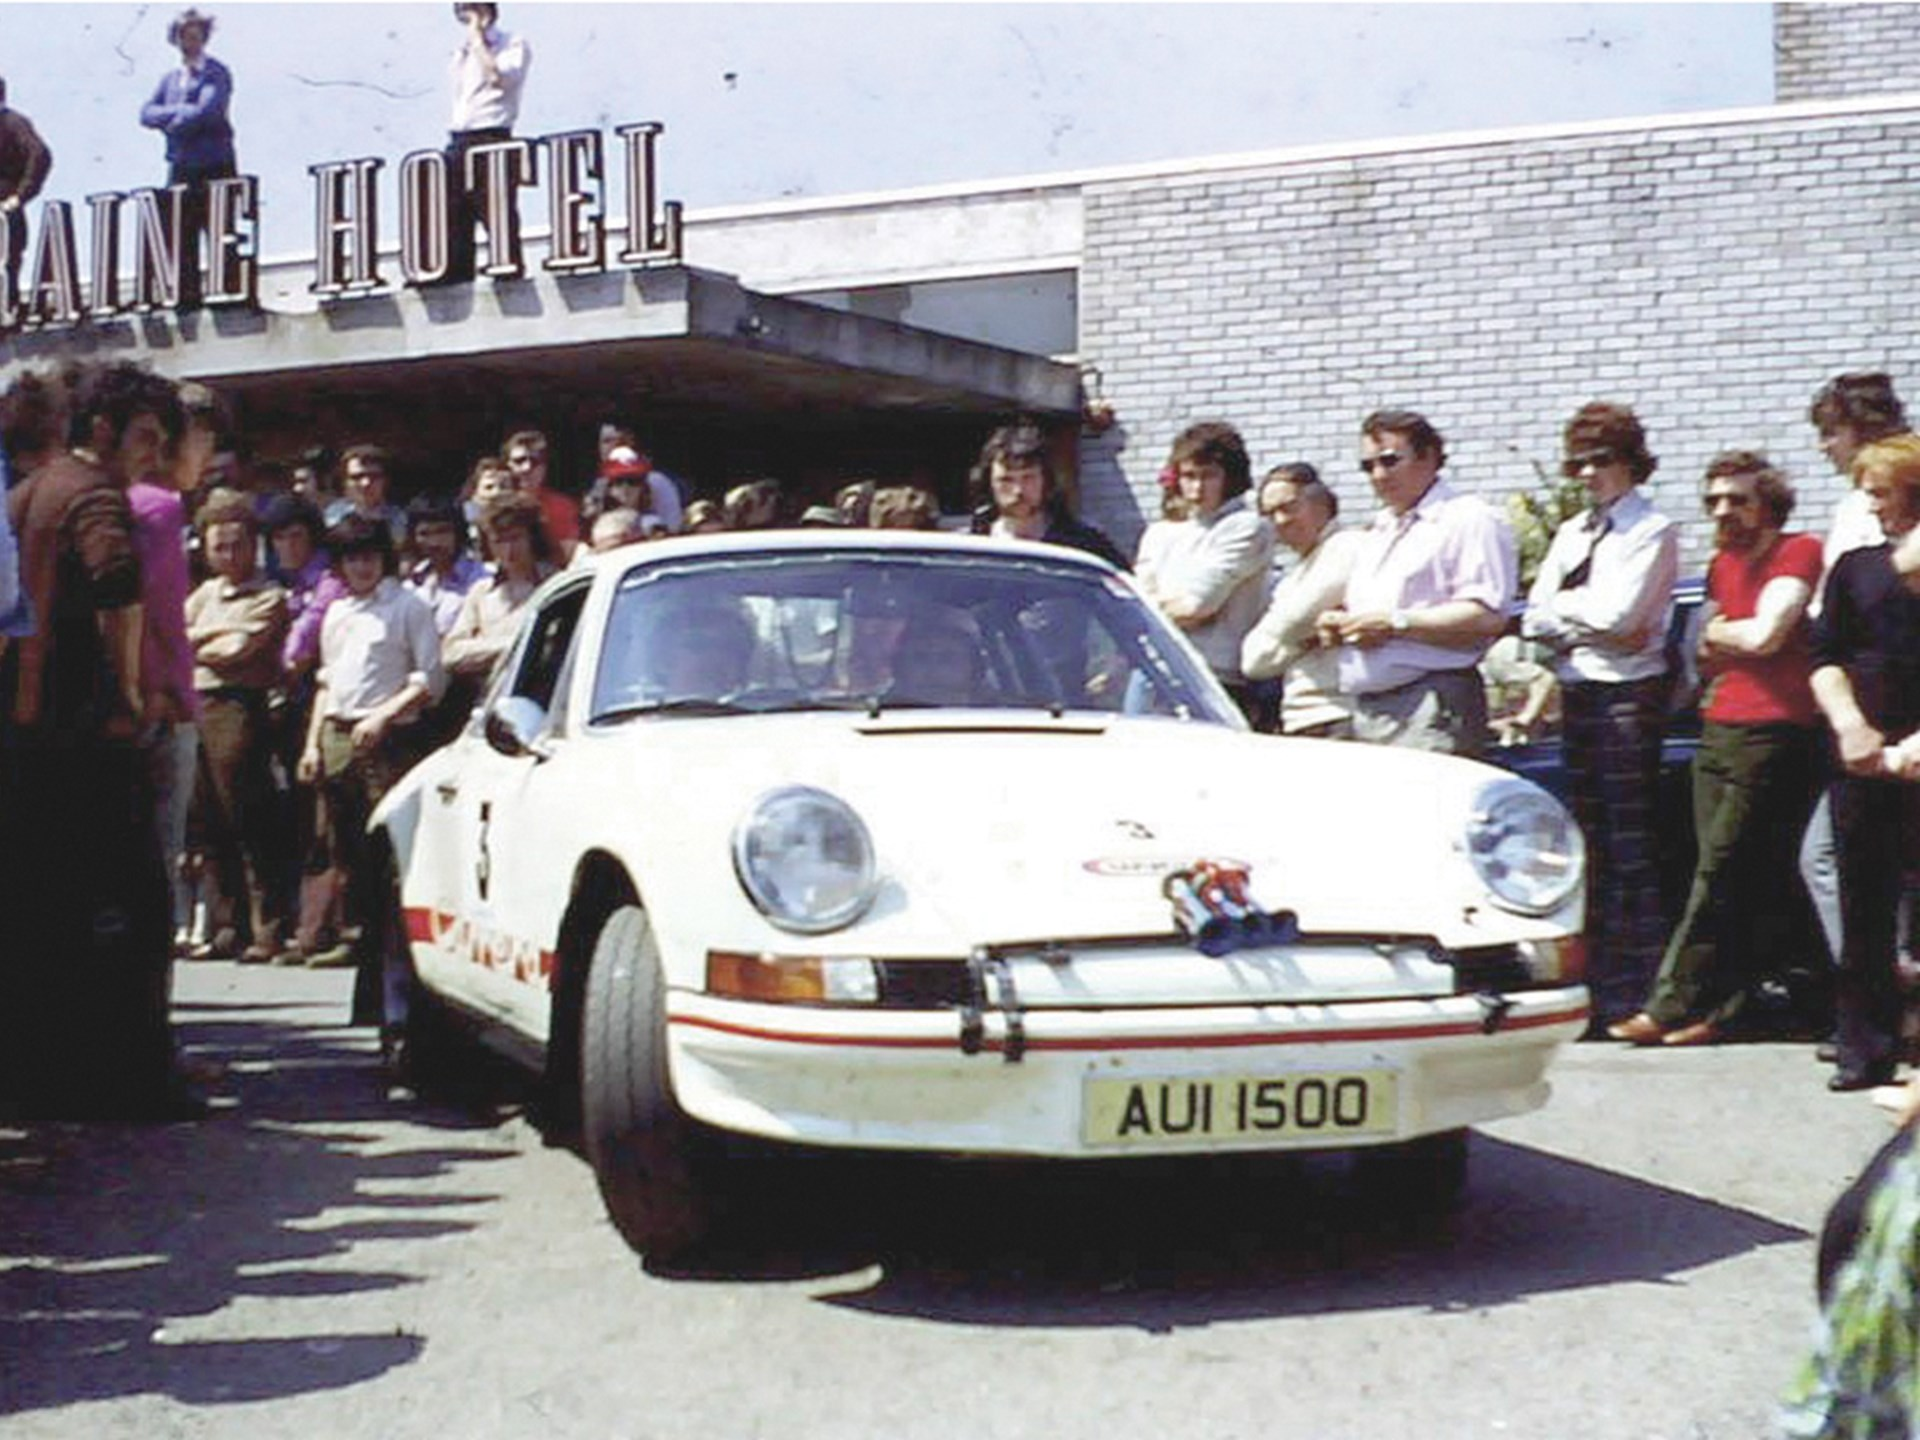 Cathal Curley at the helm of AUI 1500 for a repeat win at the 1974 Donegal International Rally.